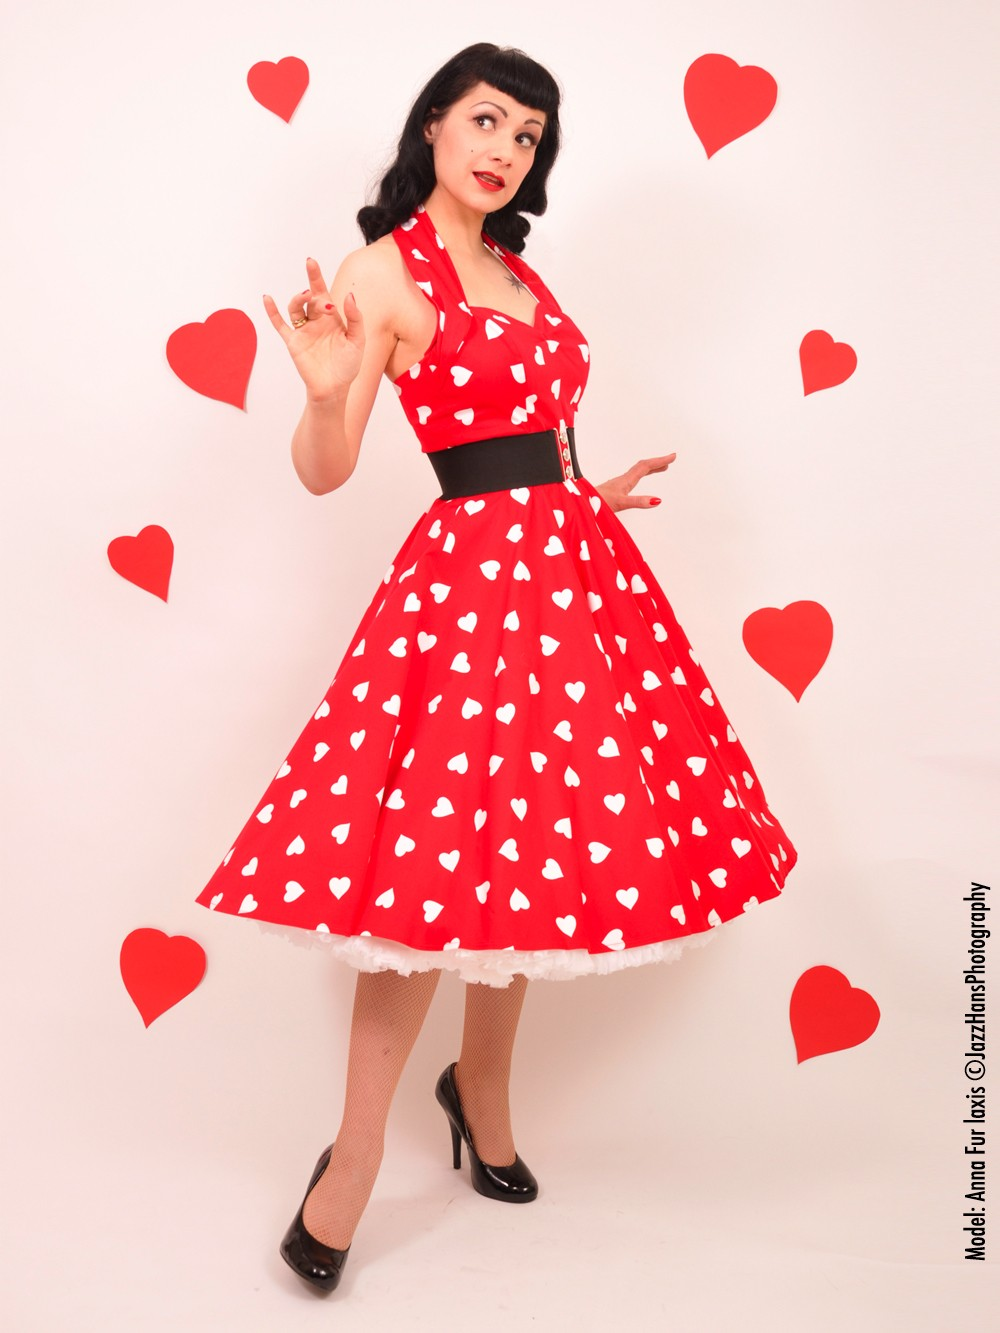 http://www.vivienofholloway.com/images/1950s-halterneck-red-sweetheart-dress-p891-2675_zoom.jpg